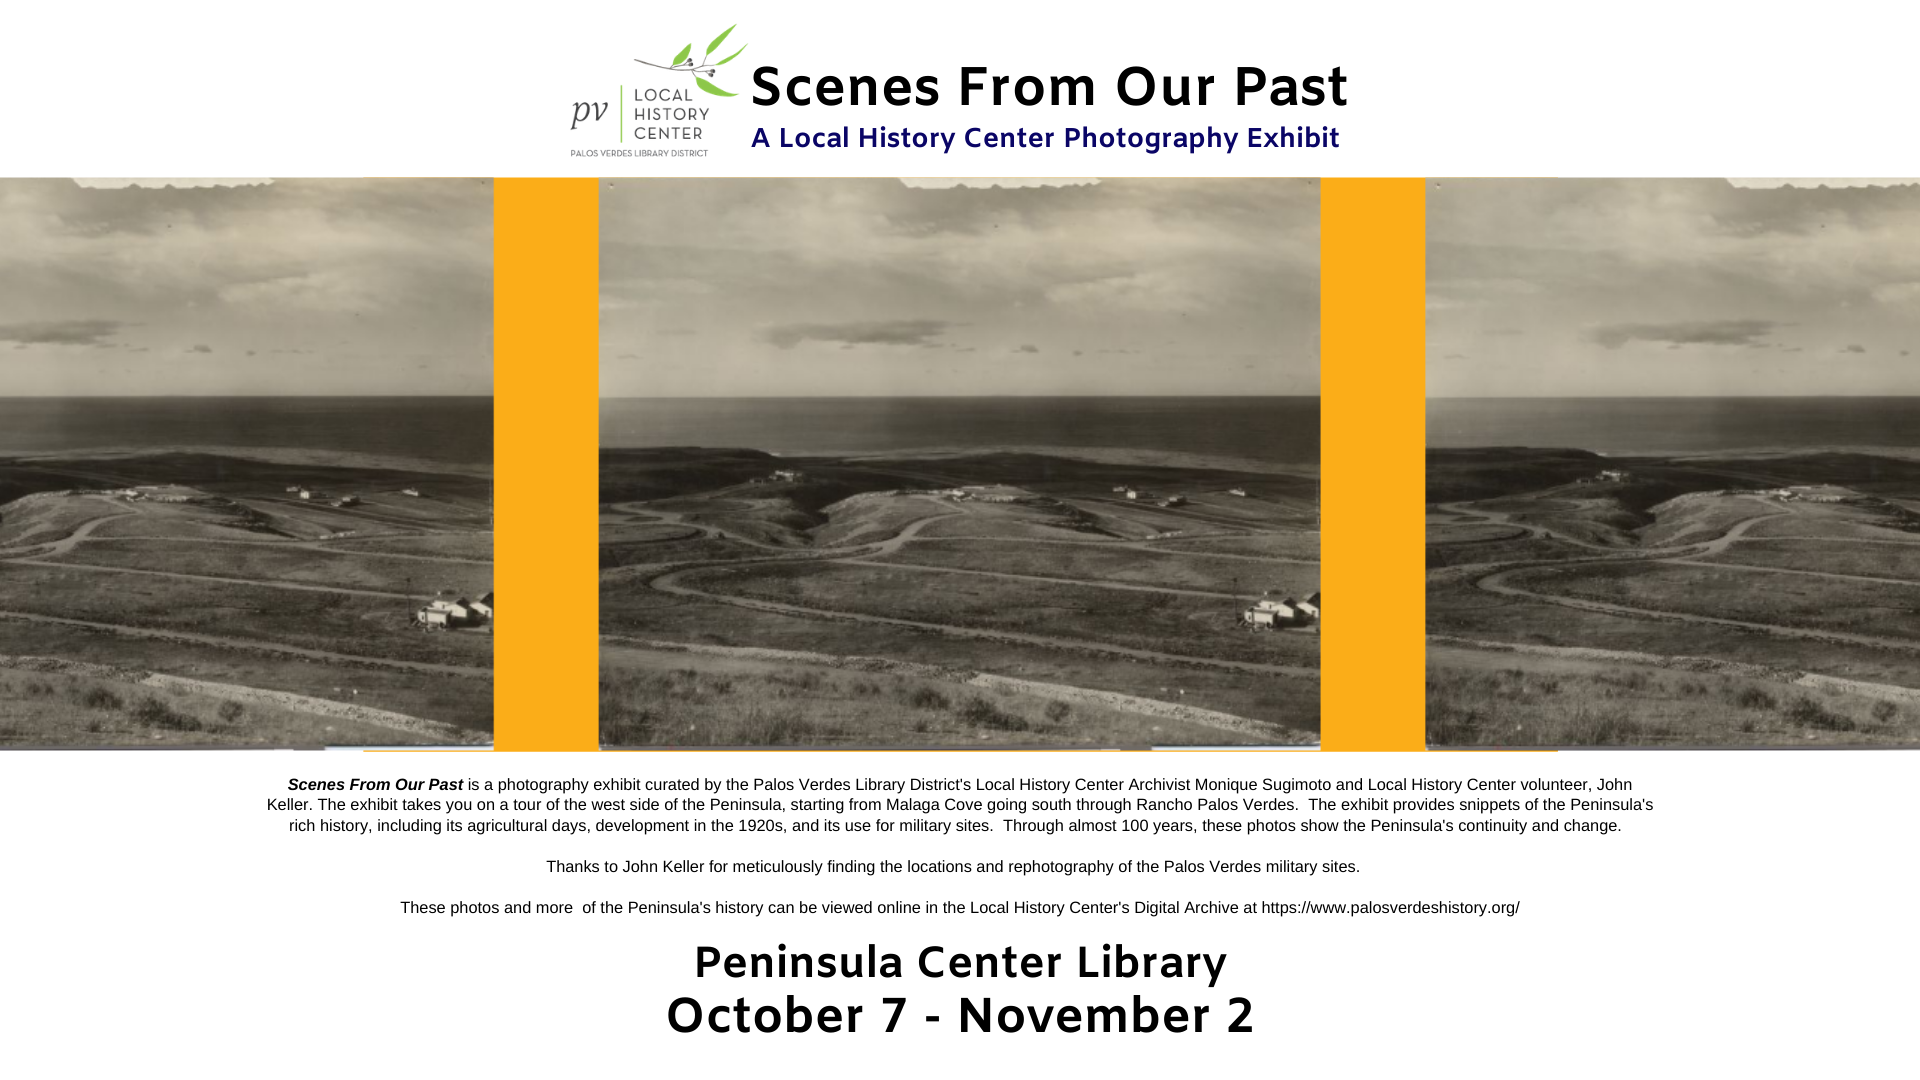 AIOL - Scenes From Our Past Local History Center Photo Exhibit